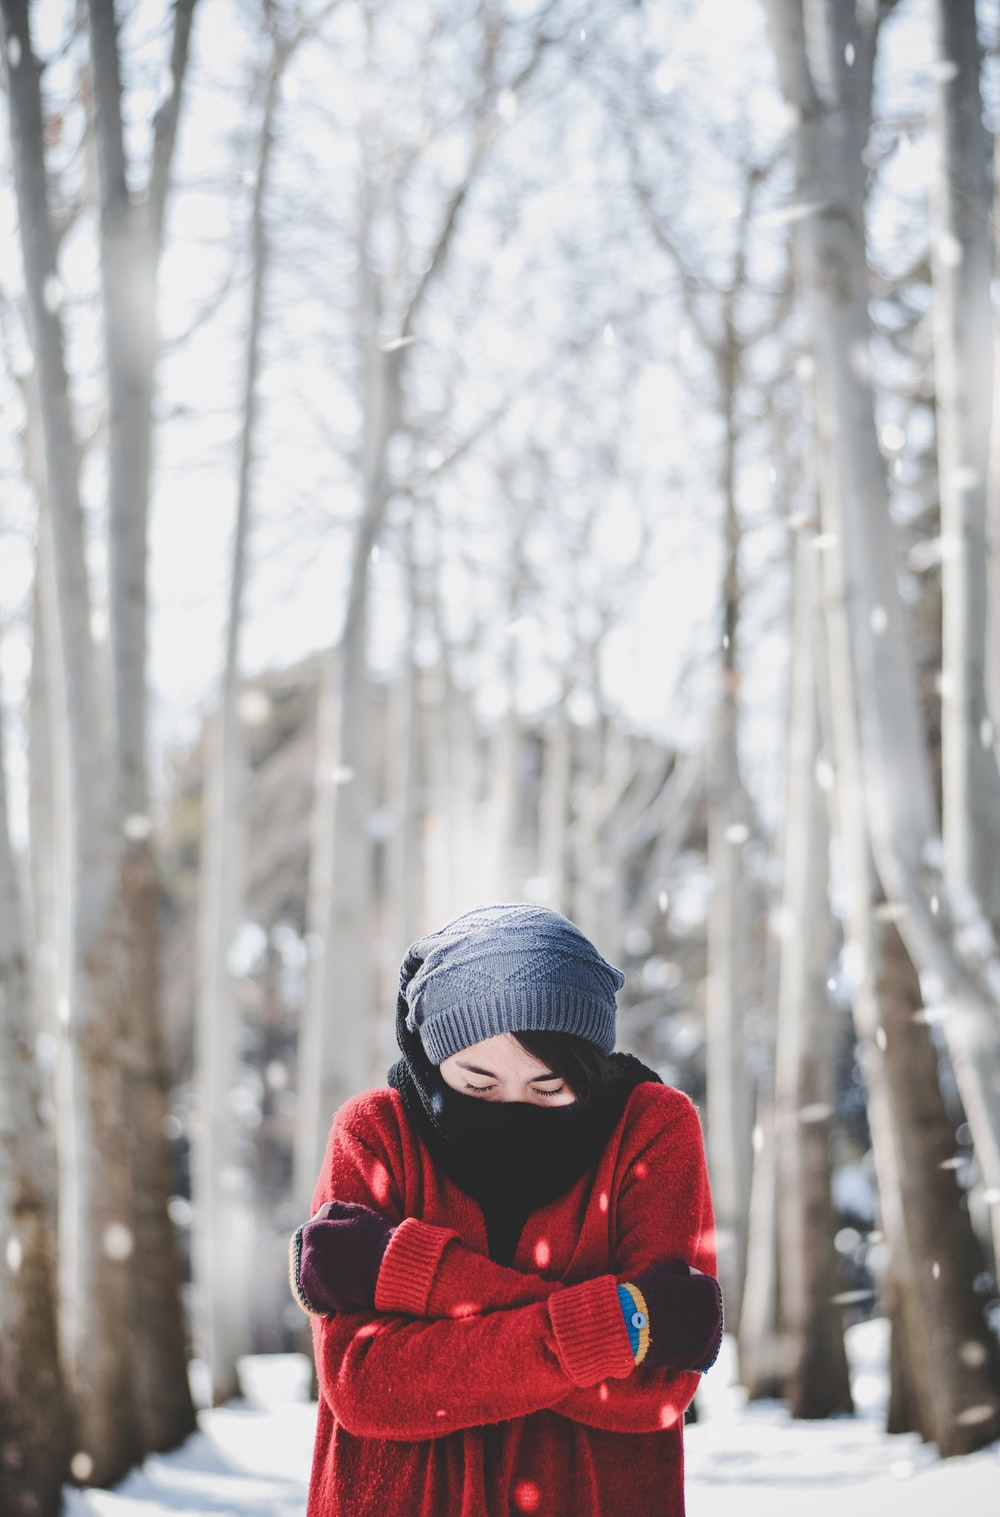 person in red jacket wearing blue knit cap standing near snow covered trees during daytime